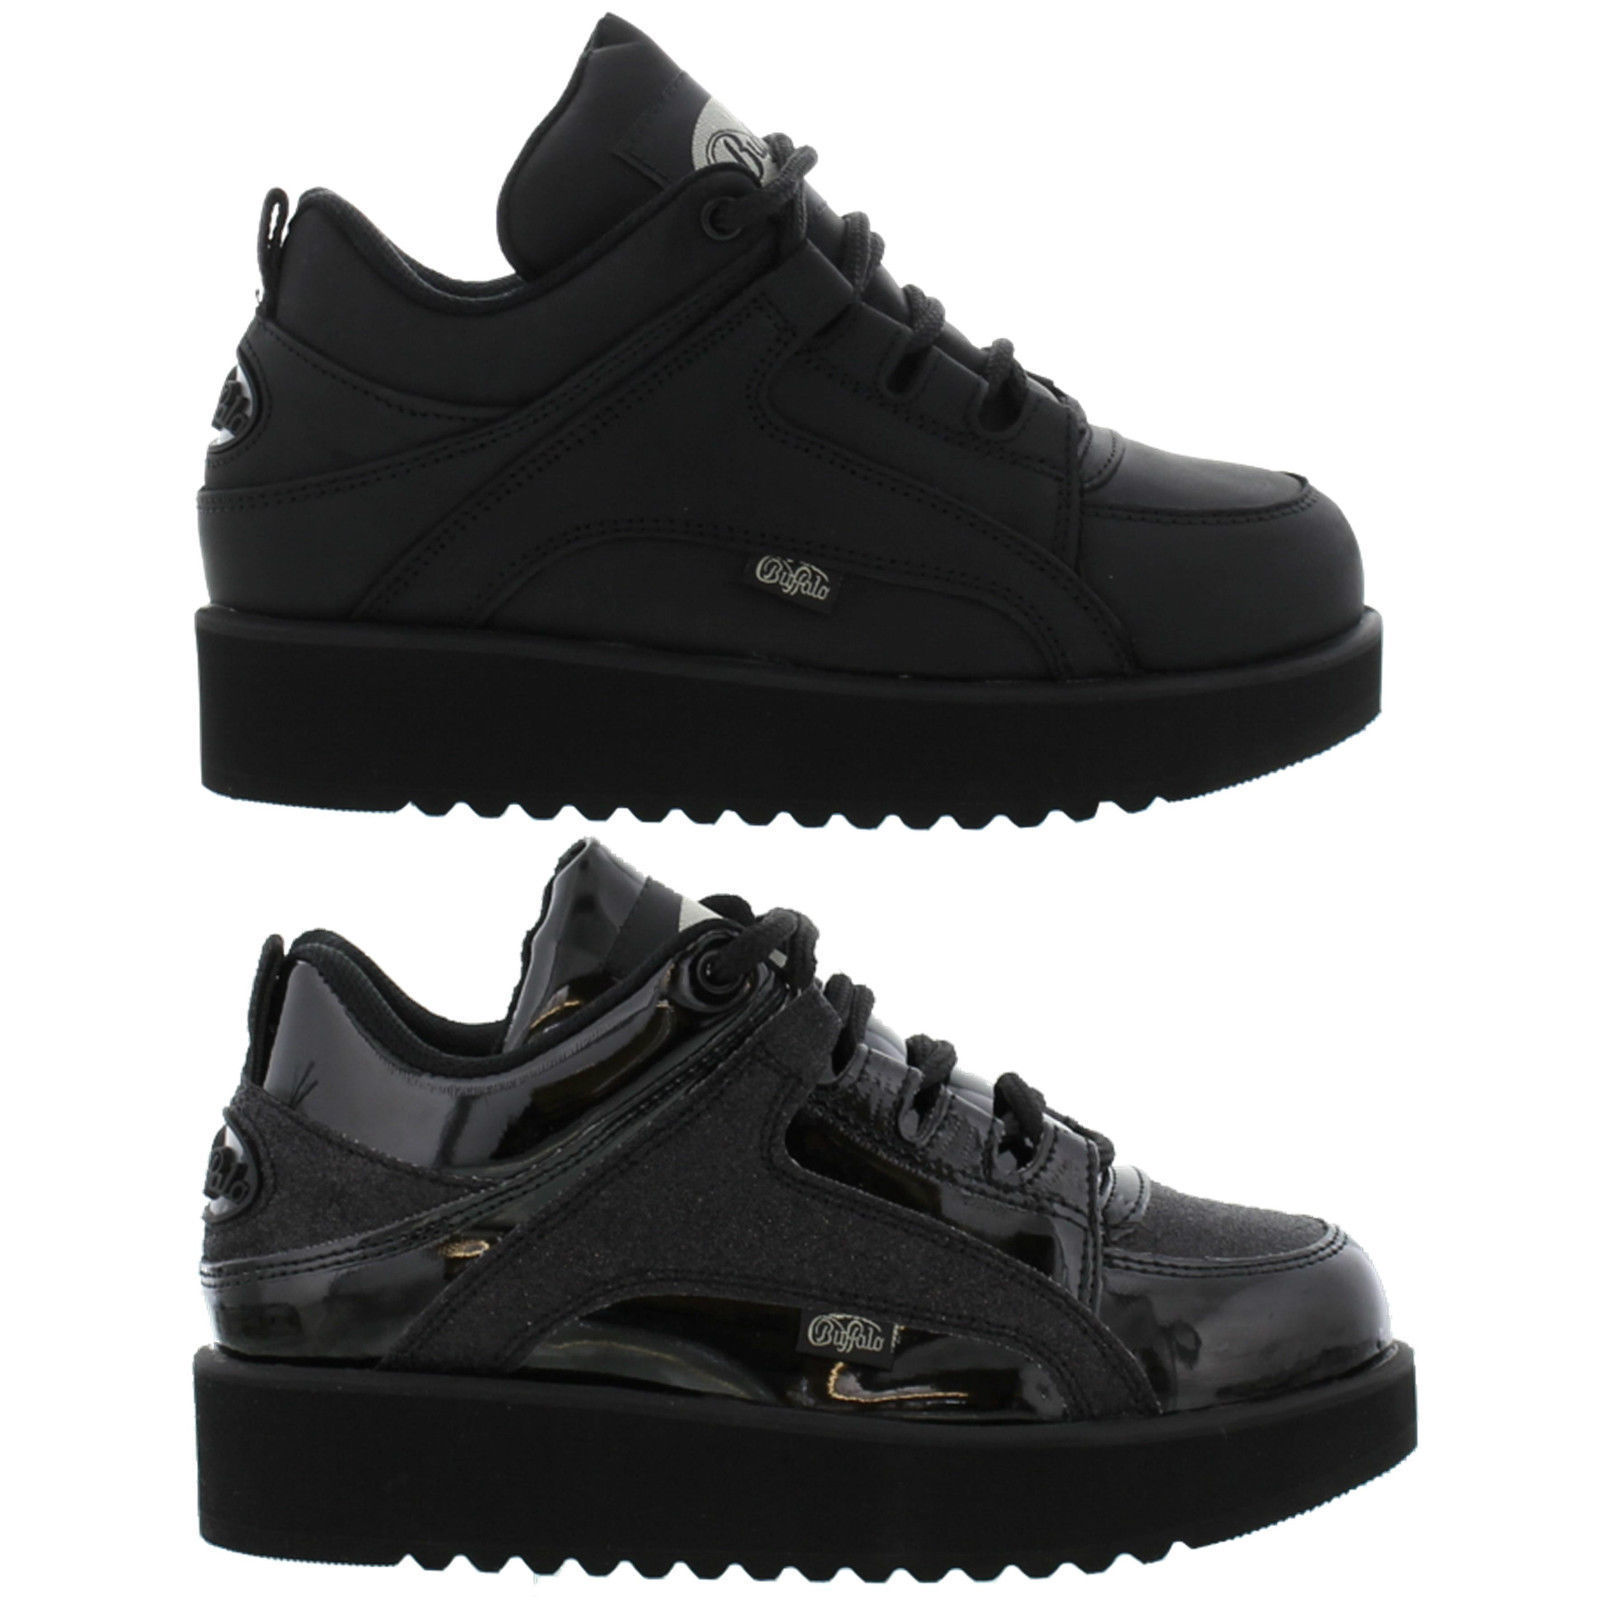 13f86ac5368fbe Details about Buffalo 1330   1330-4 Womens Black leather Trainers Shoes  Size 4-9